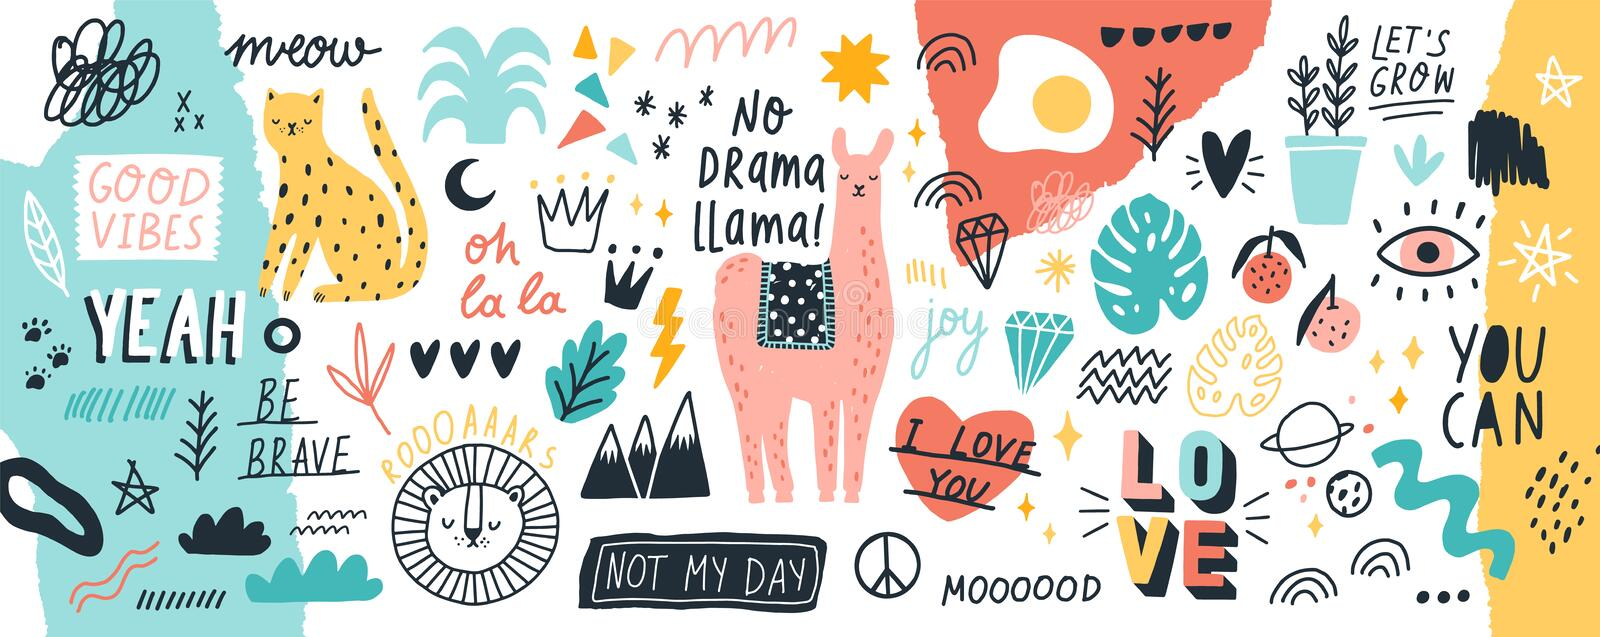 Collection of handwritten slogans or phrases and decorative design elements hand drawn in trendy doodle style - animals vector illustration